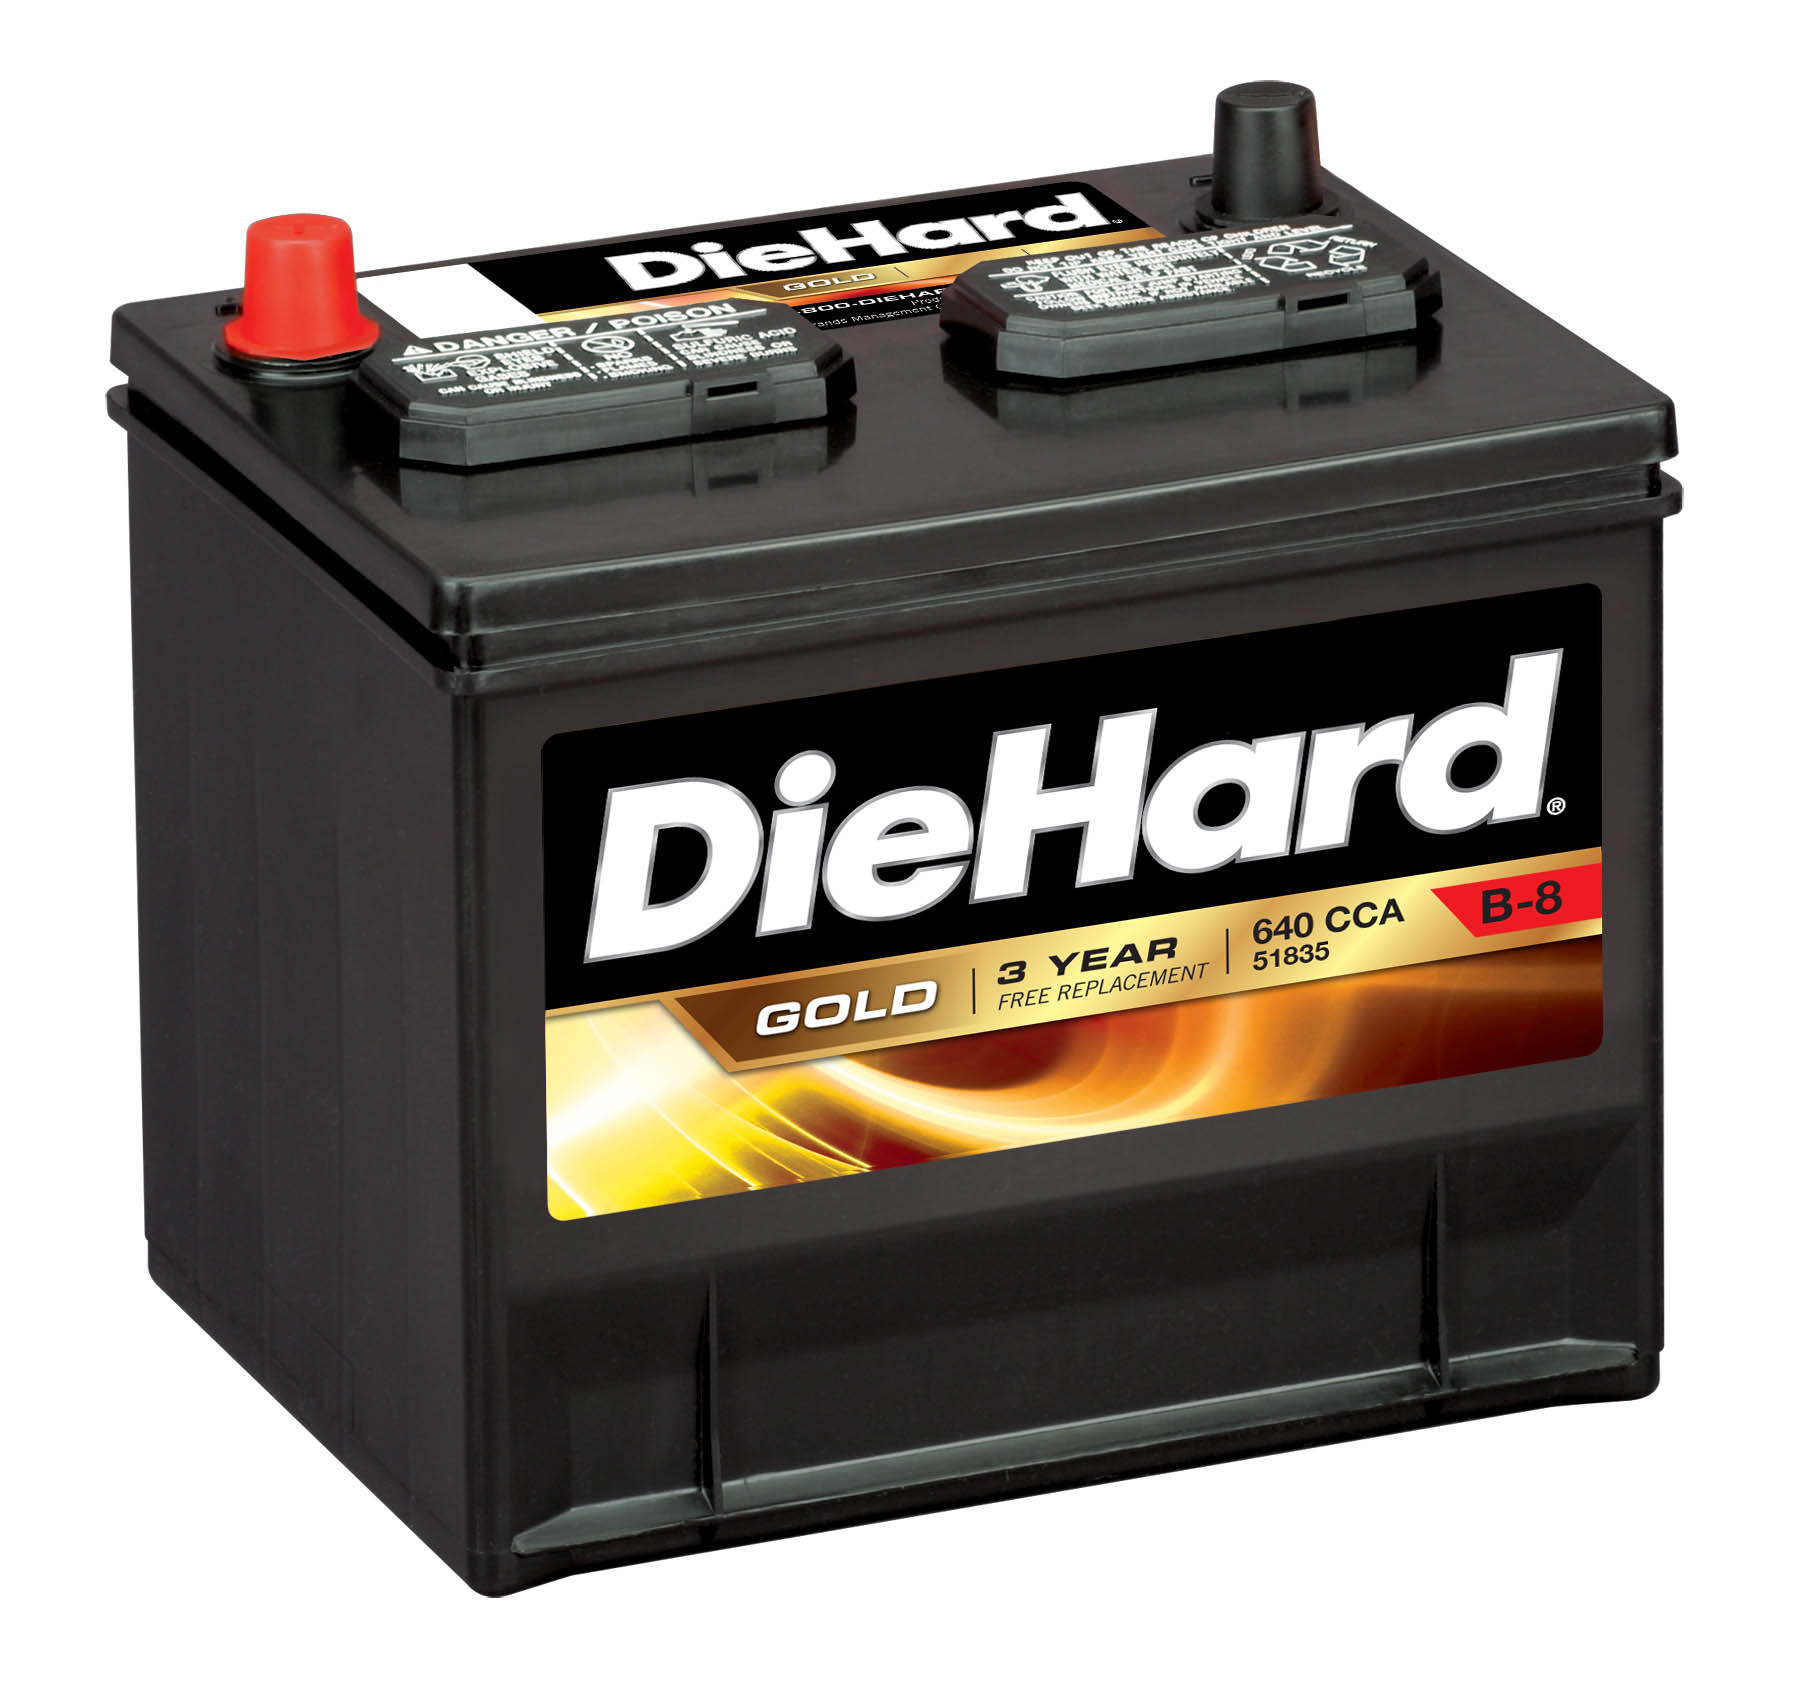 Diehard gold automotive battery group size jc 35 price with exchange